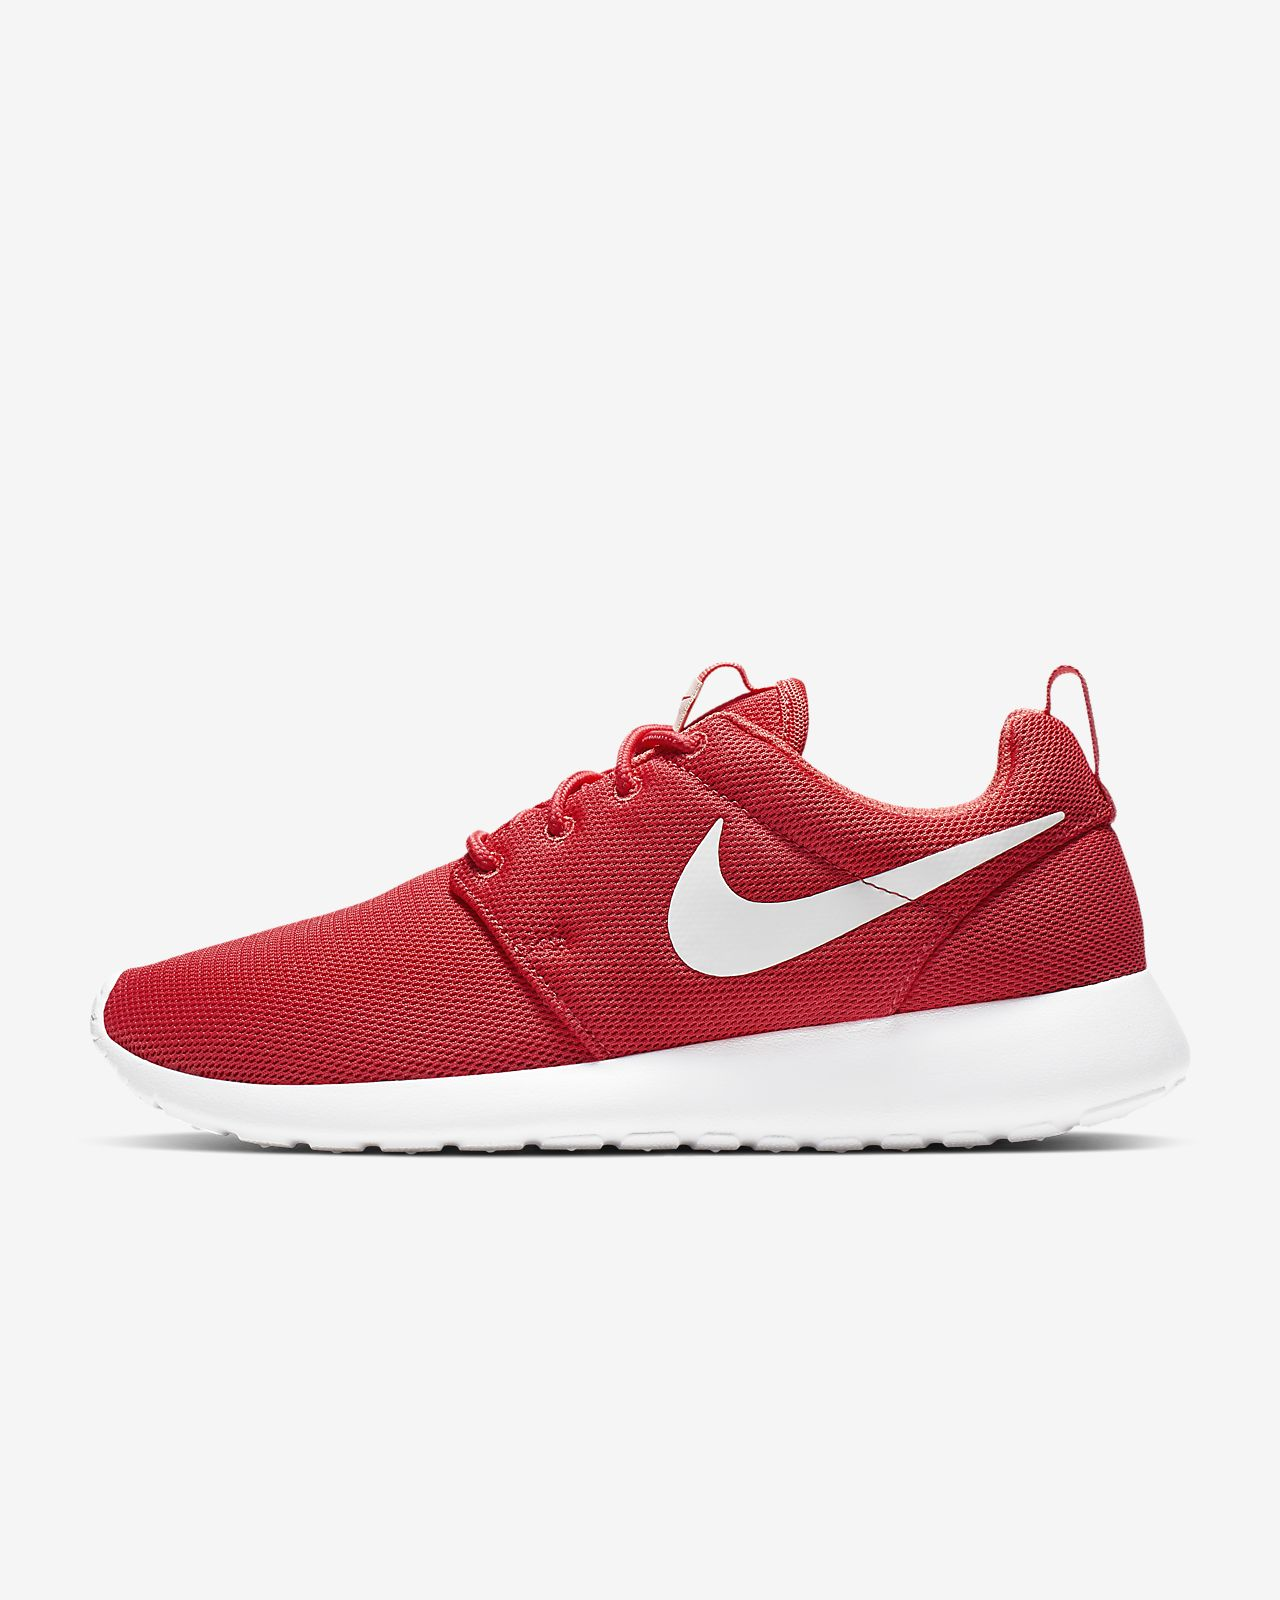 premium selection b2930 163e4 ... Nike Roshe One Women s Shoe